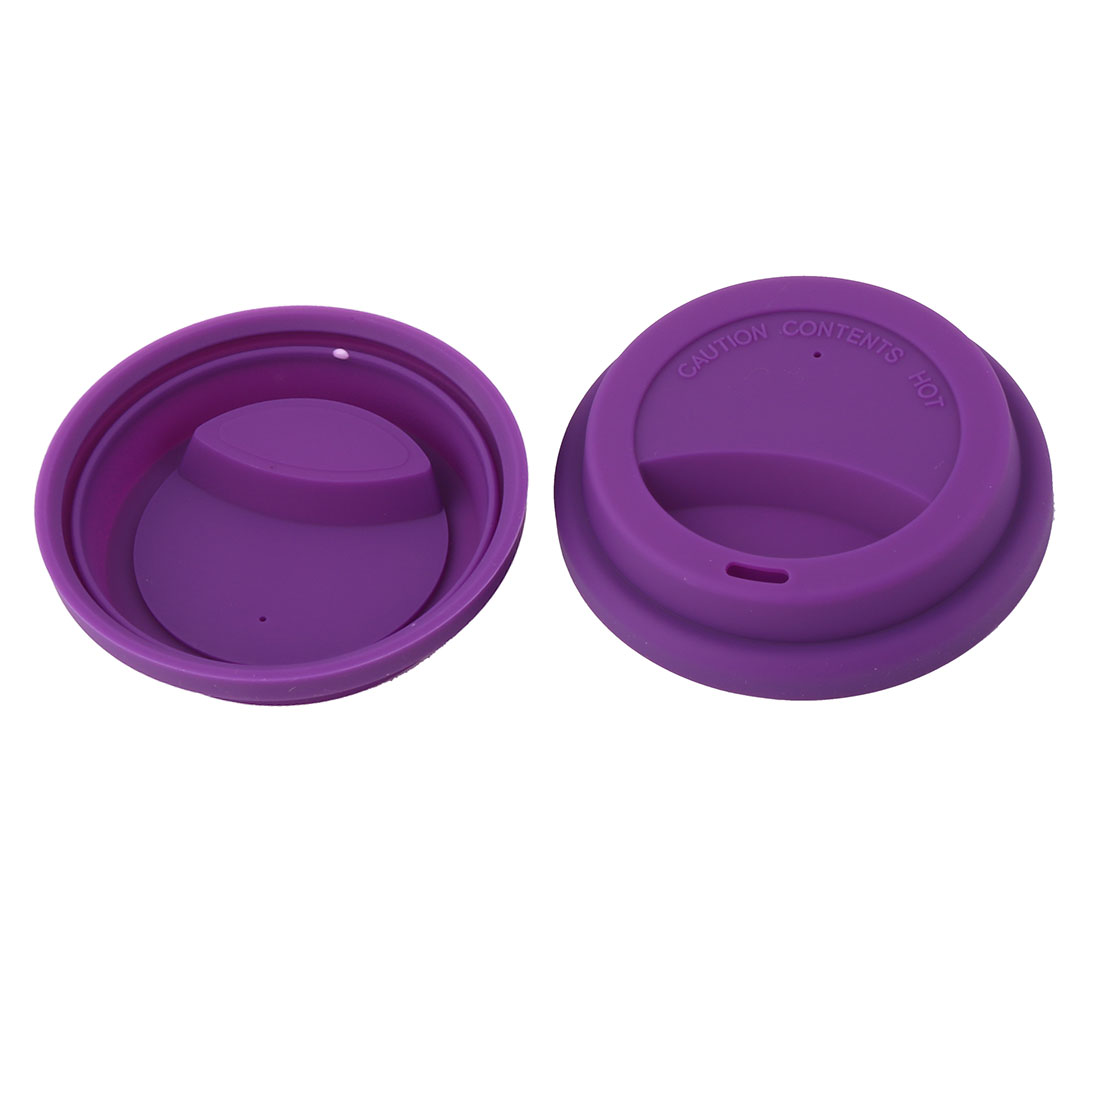 Family Cafe Silicone Round Water Tea Coffee Mug Cup Sealed Lid Cover Purple 2pcs